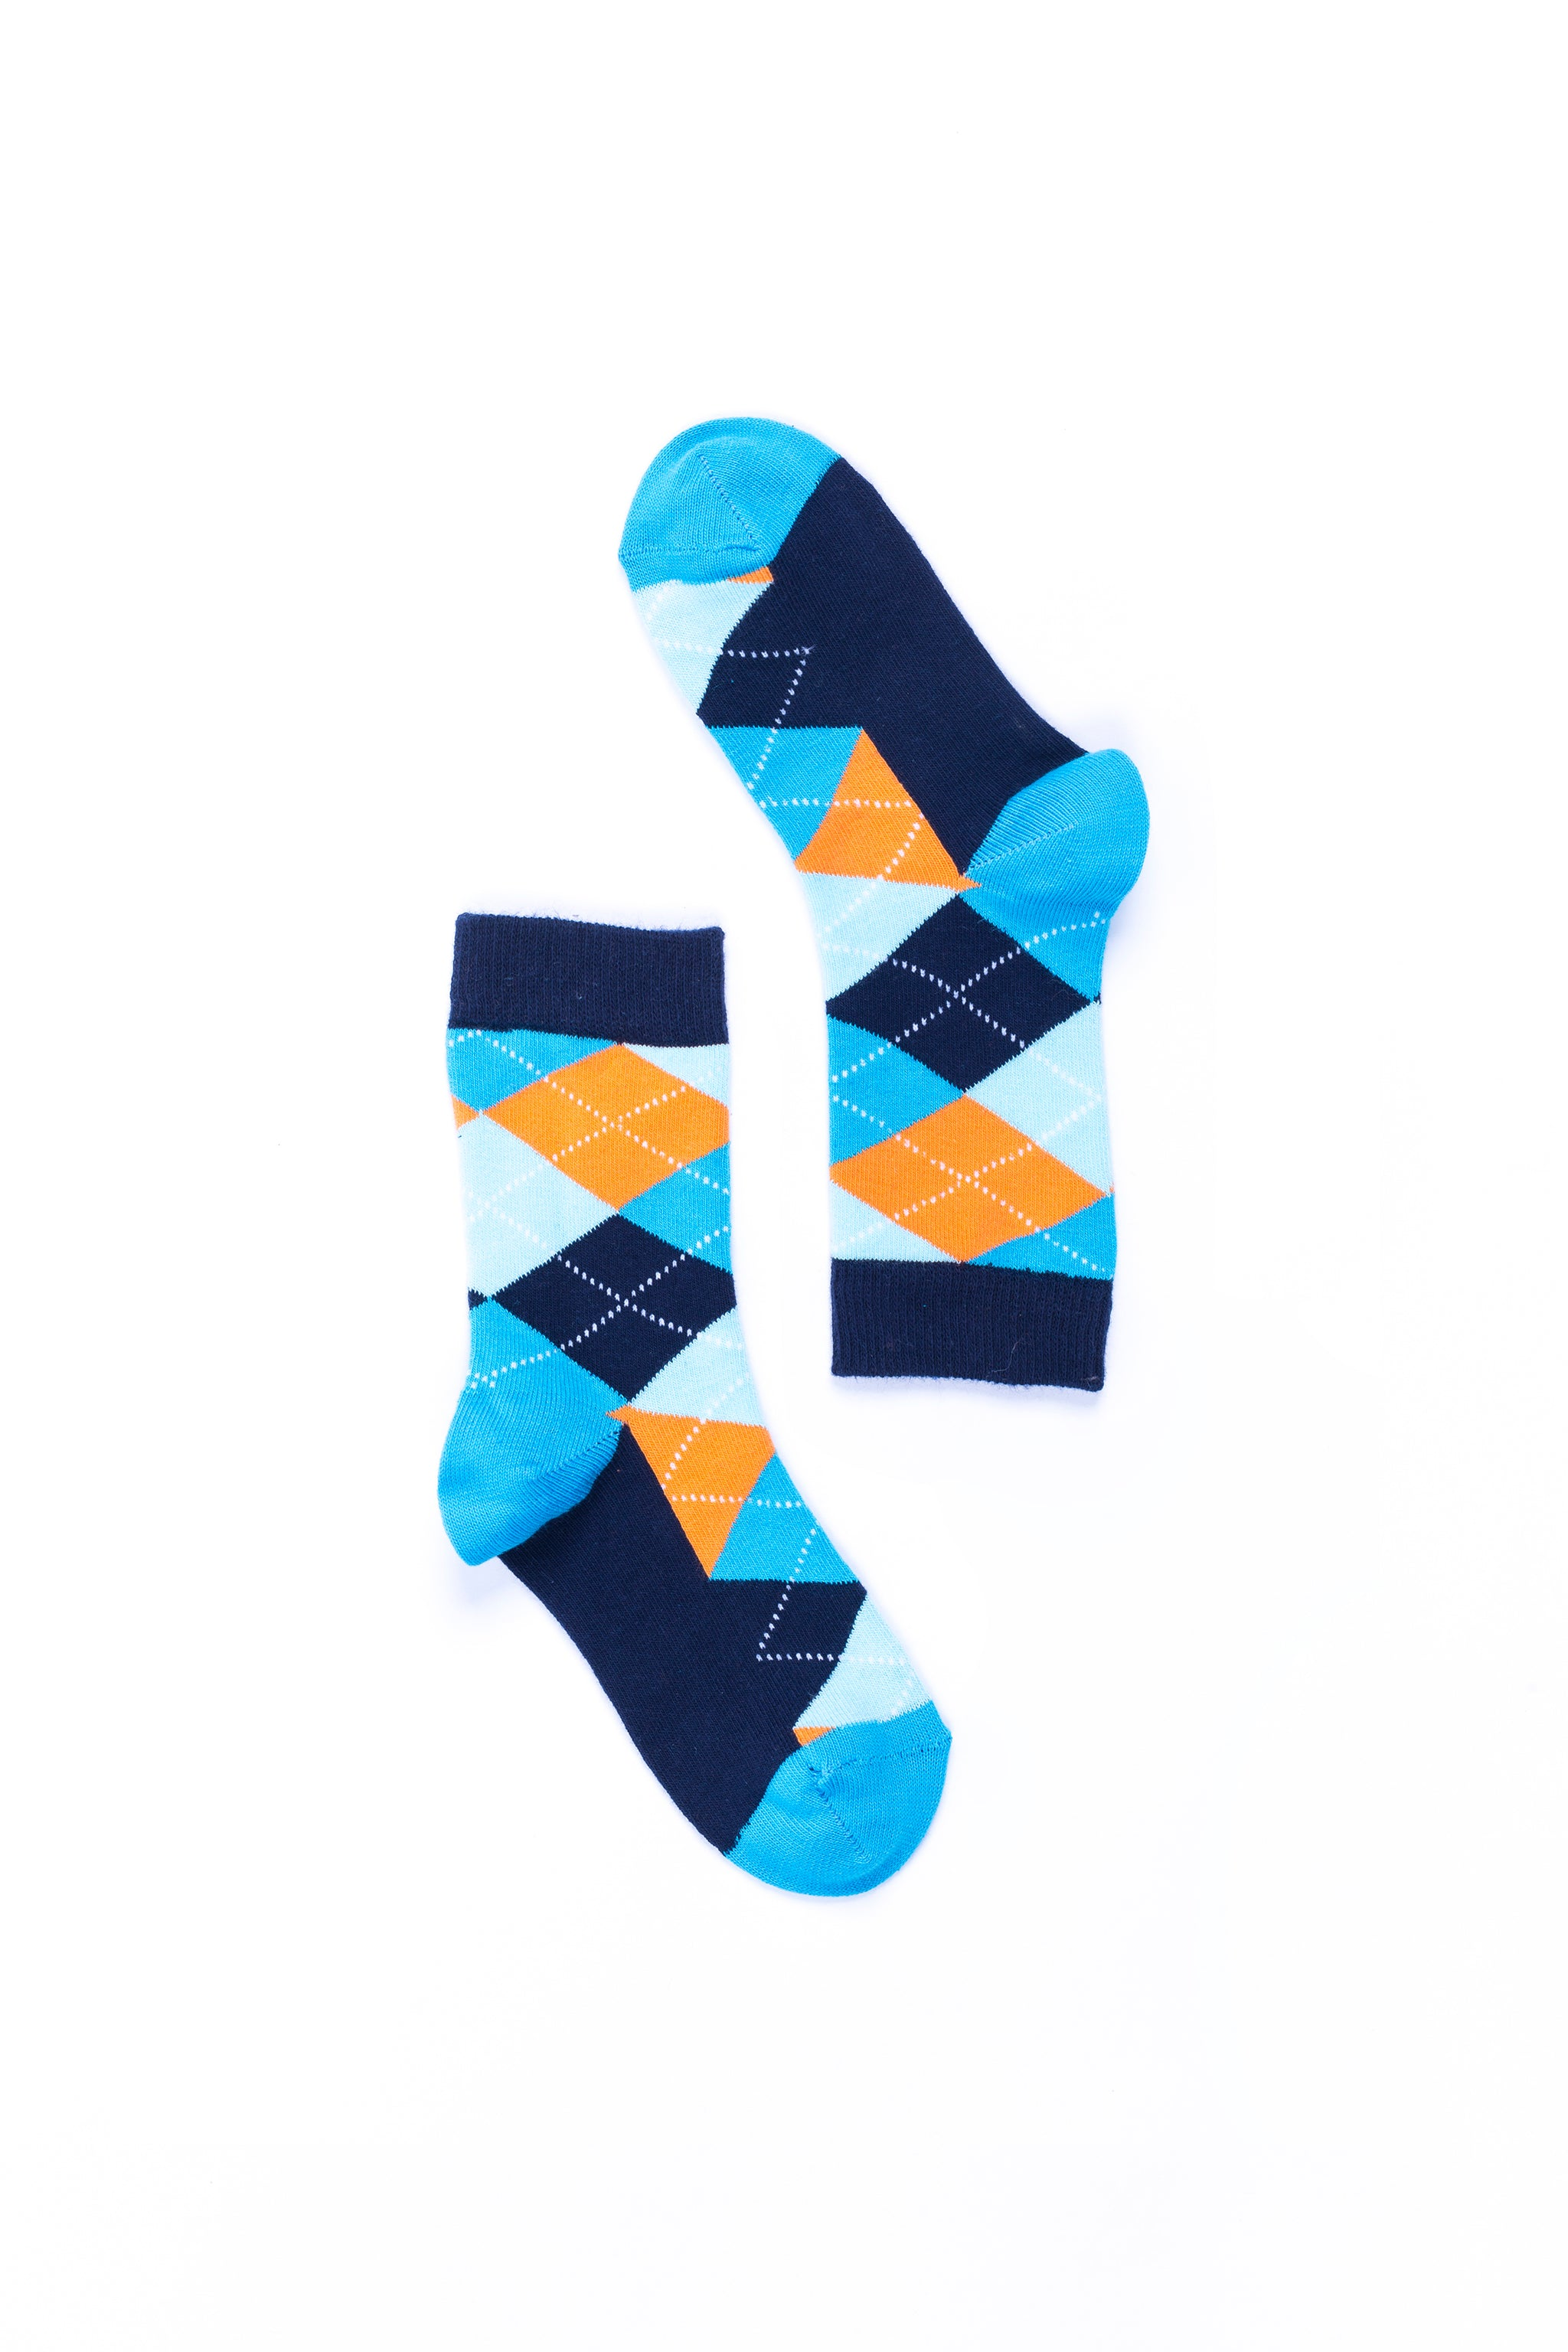 Women's Vibrant Sky Argyle Socks